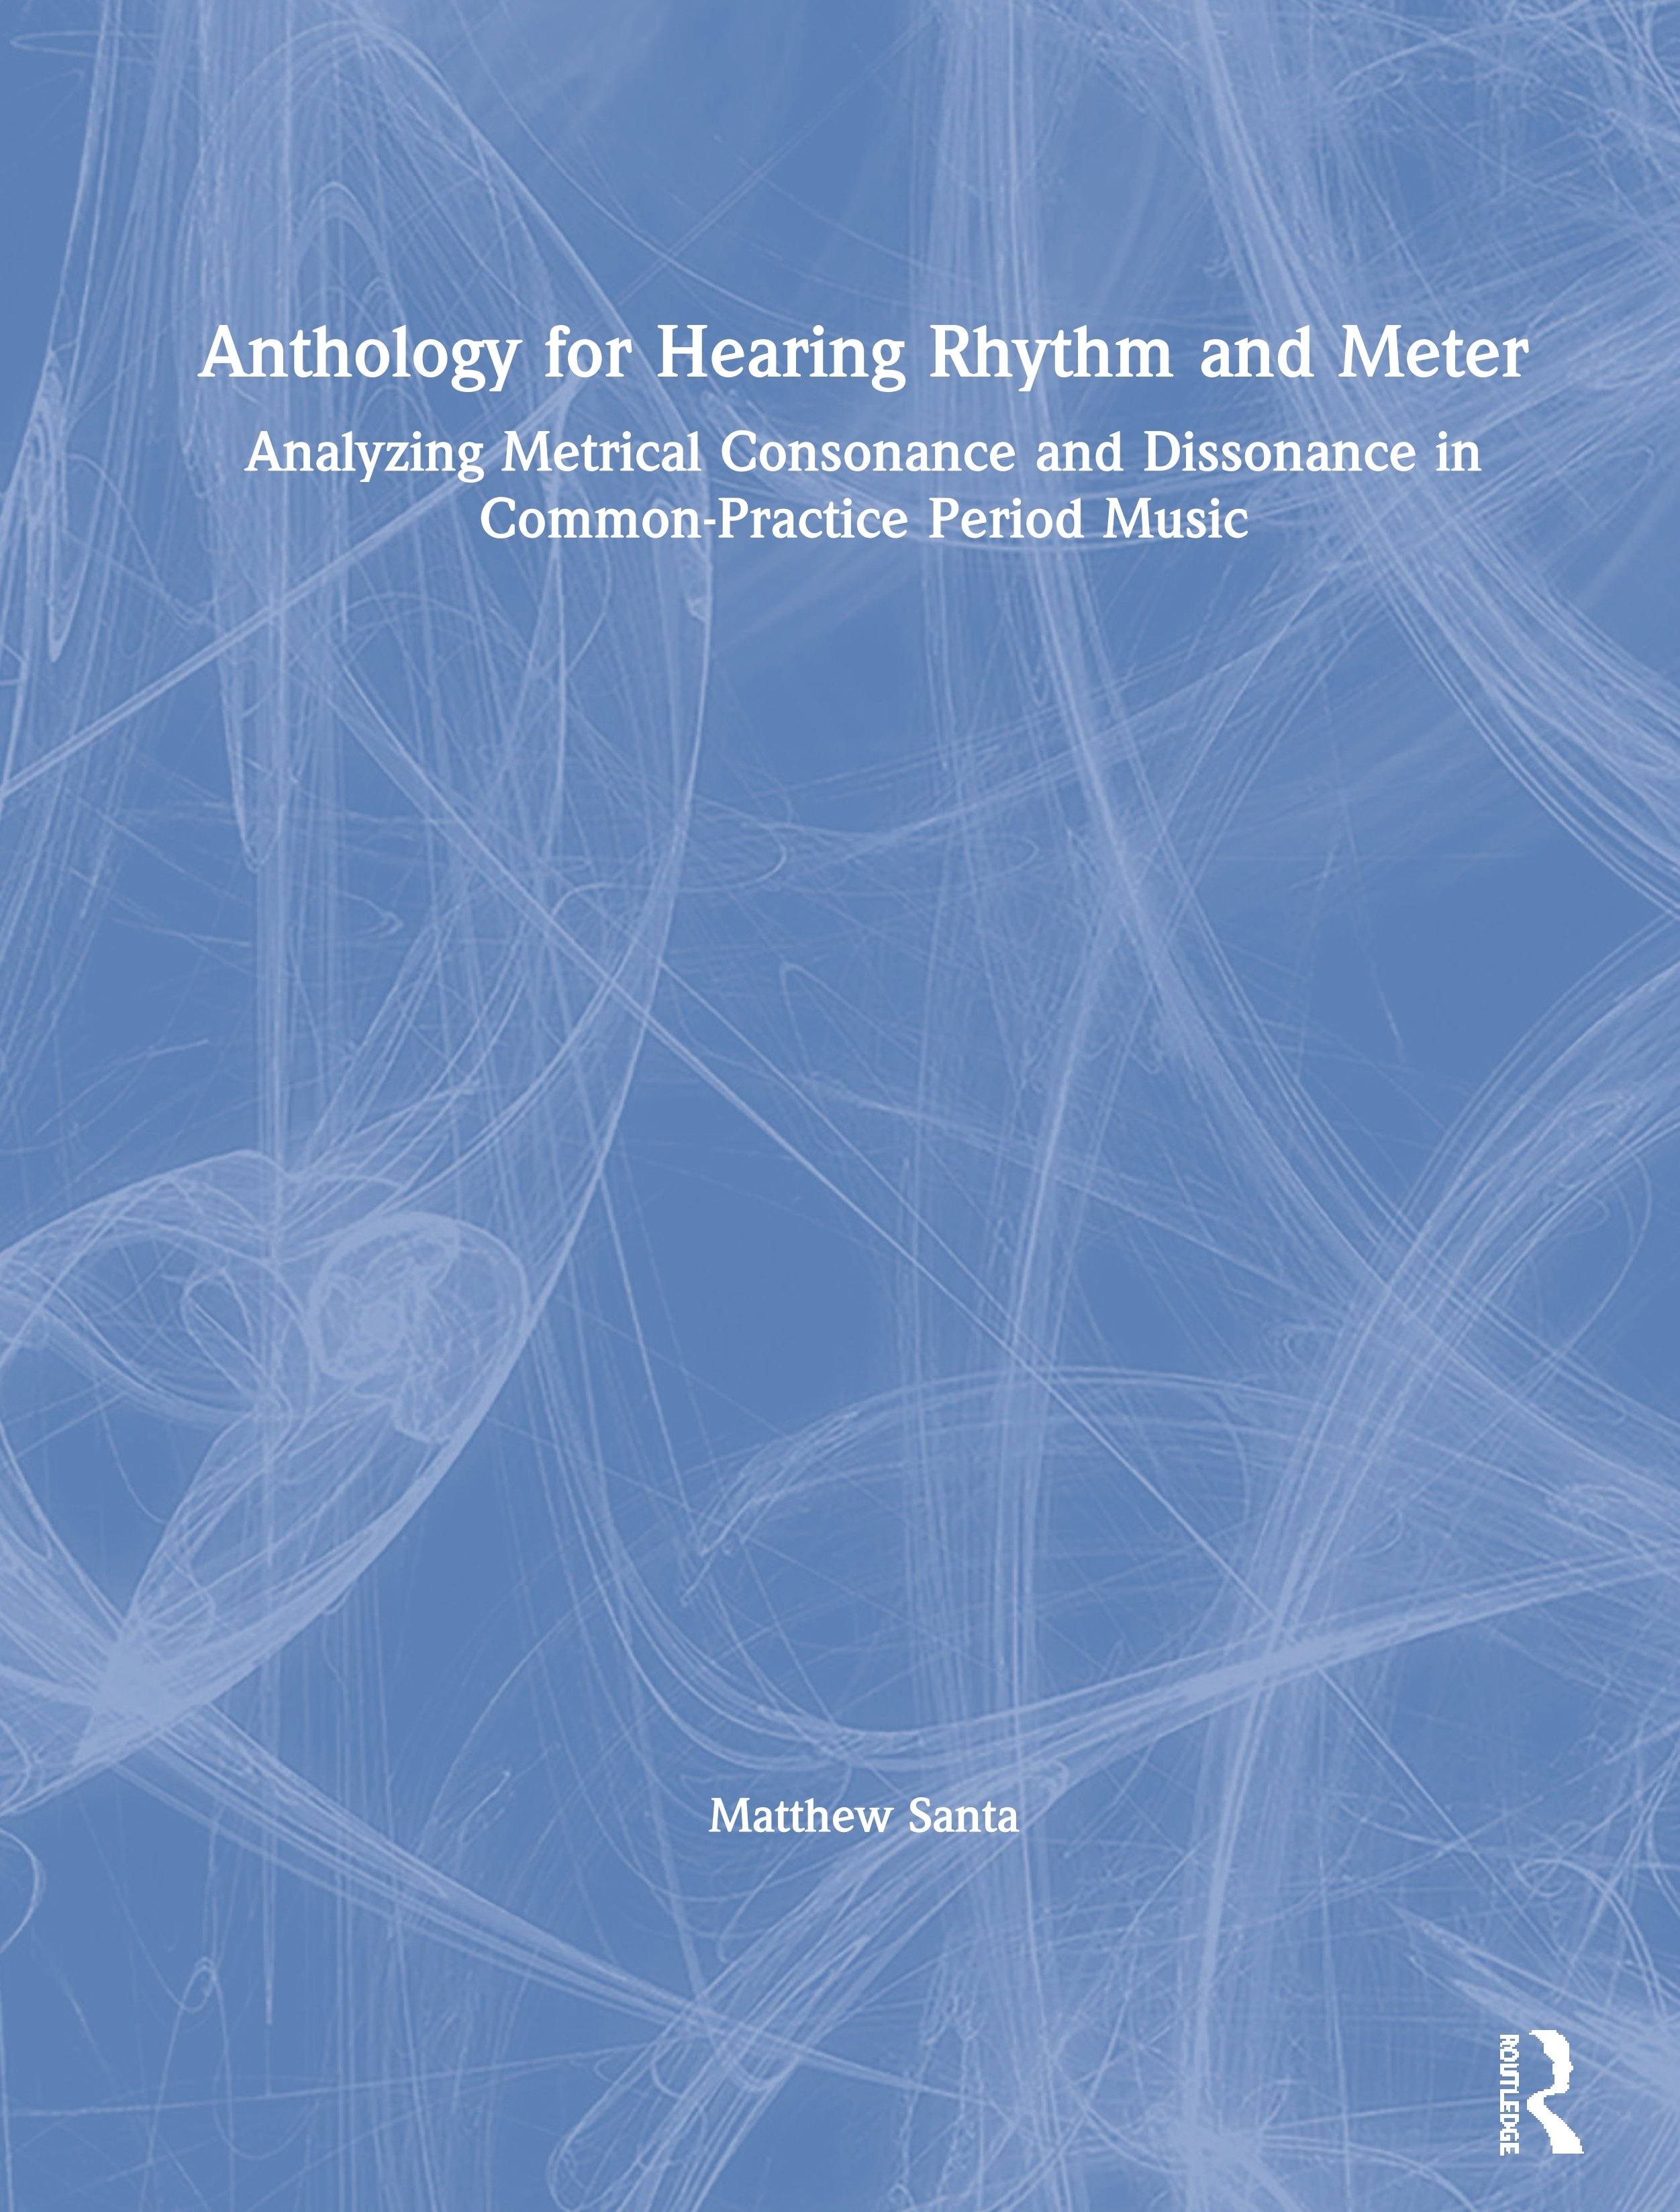 Anthology for Hearing Rhythm and Meter